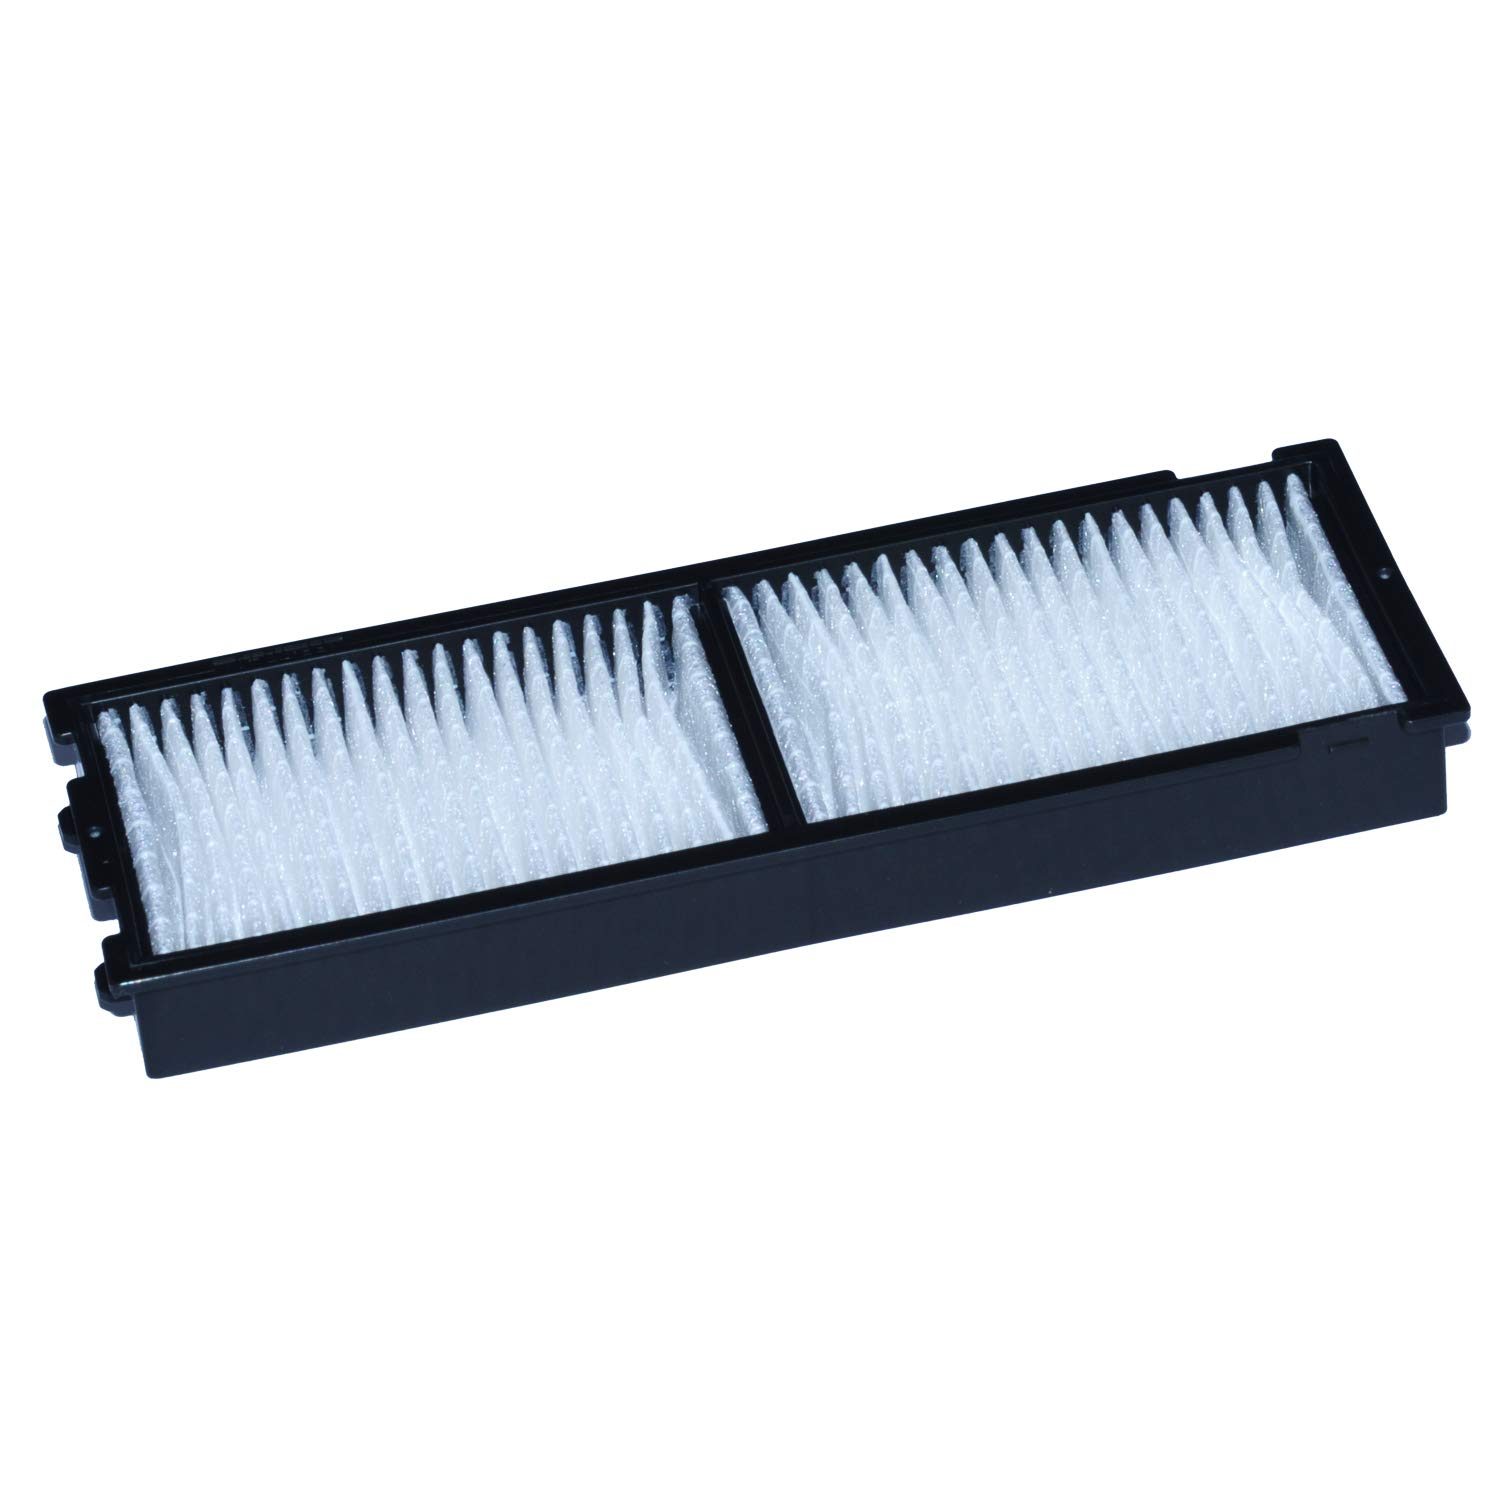 AWO Replacement Projector Air Filter Fit for EPSON ELPAF38 V13H134A38 EH-TW5900,EH-TW5910,EH-TW6000,EH-TW6000W,EH-TW6100,EH-TW6100W